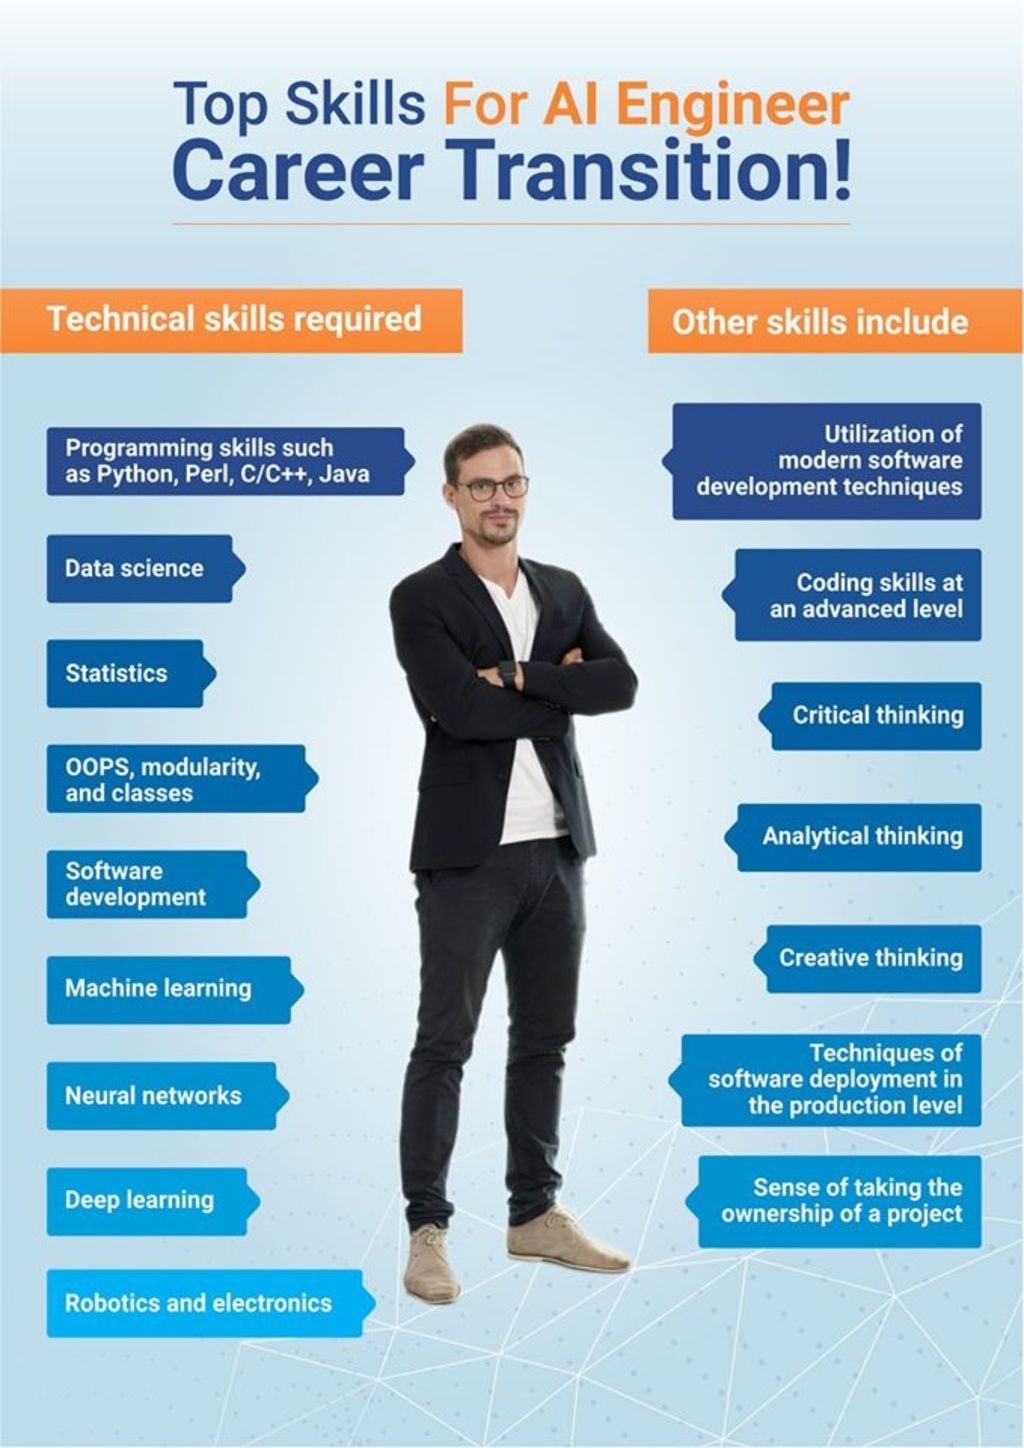 Top Skills For AI Engineers via Artificial Intelligence Board of America